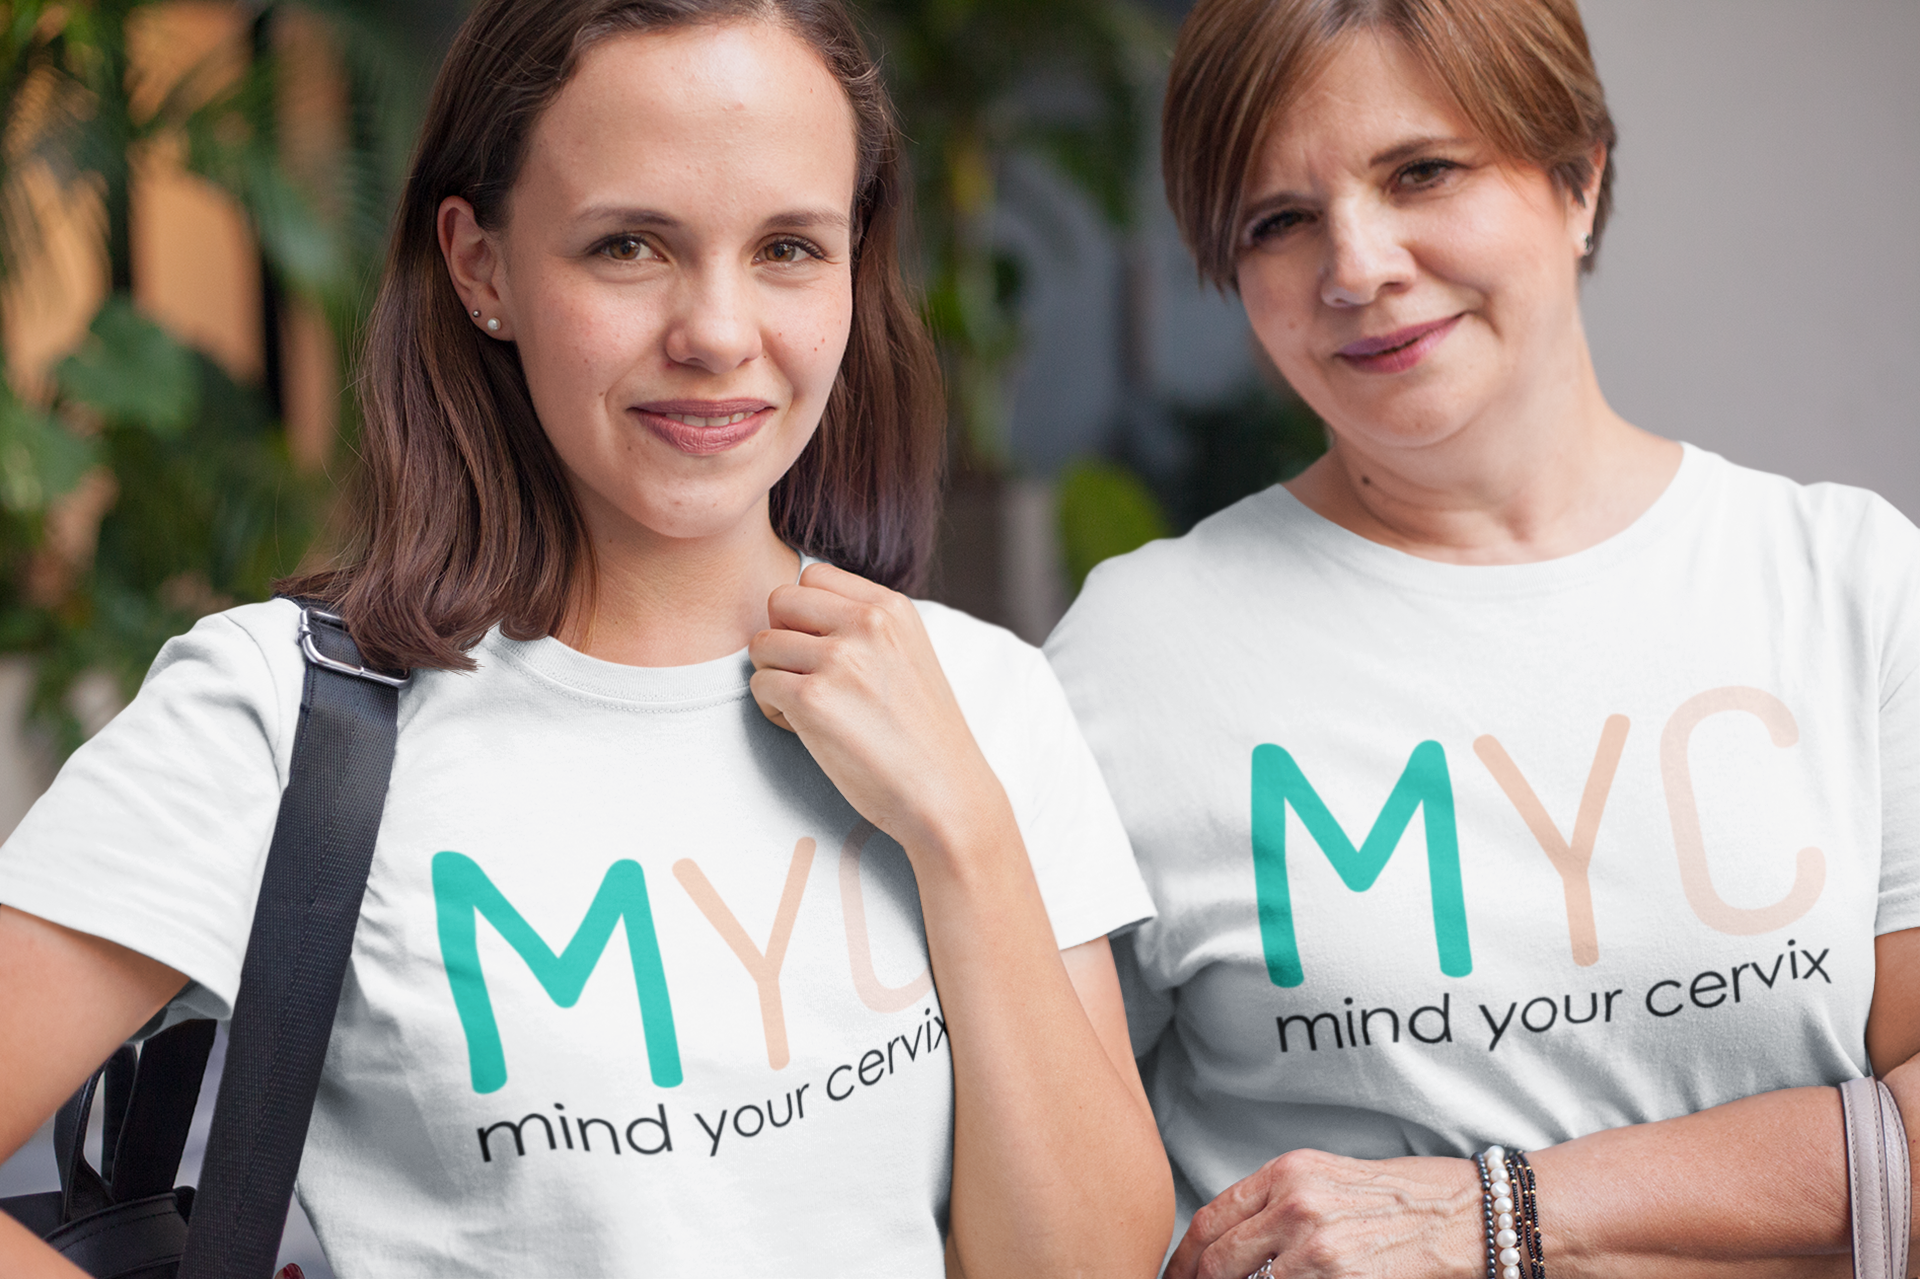 daughter-and-mom-wearing-t-shirts-mockup-taking-a-walk-downtown-a20726.png